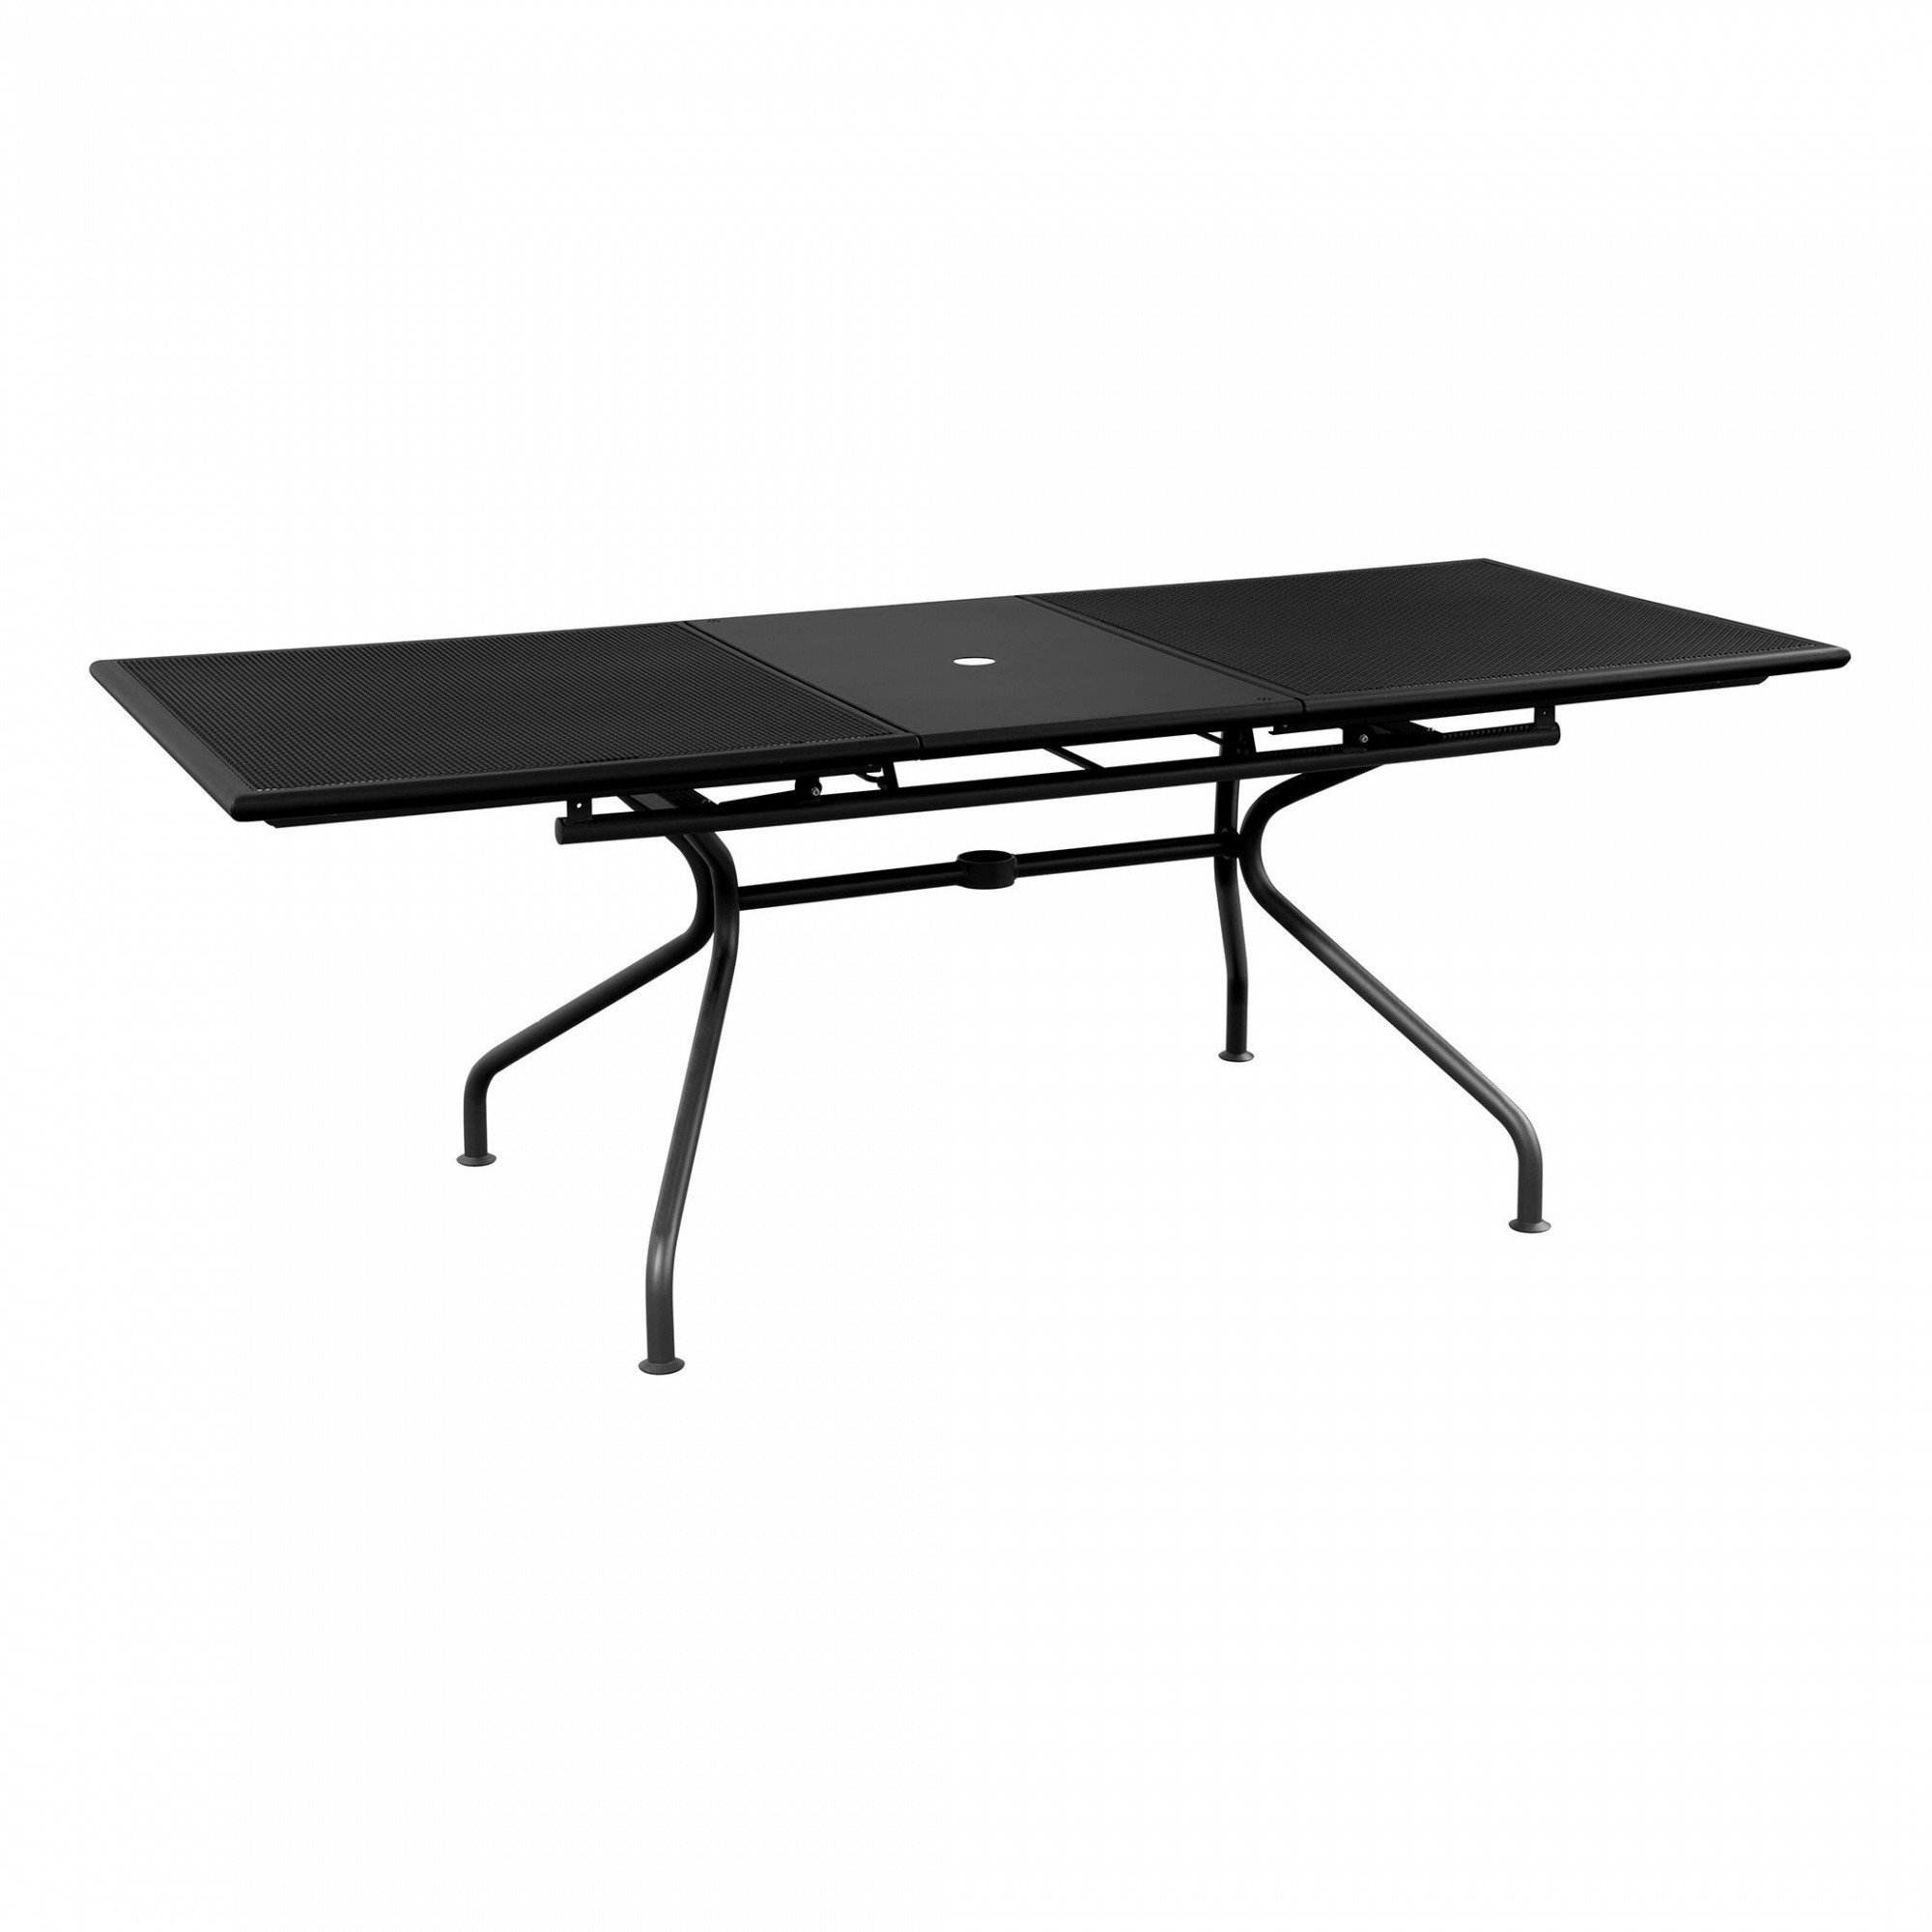 Jardin De Extensible 160x90cm Table Athena BxerdCoW